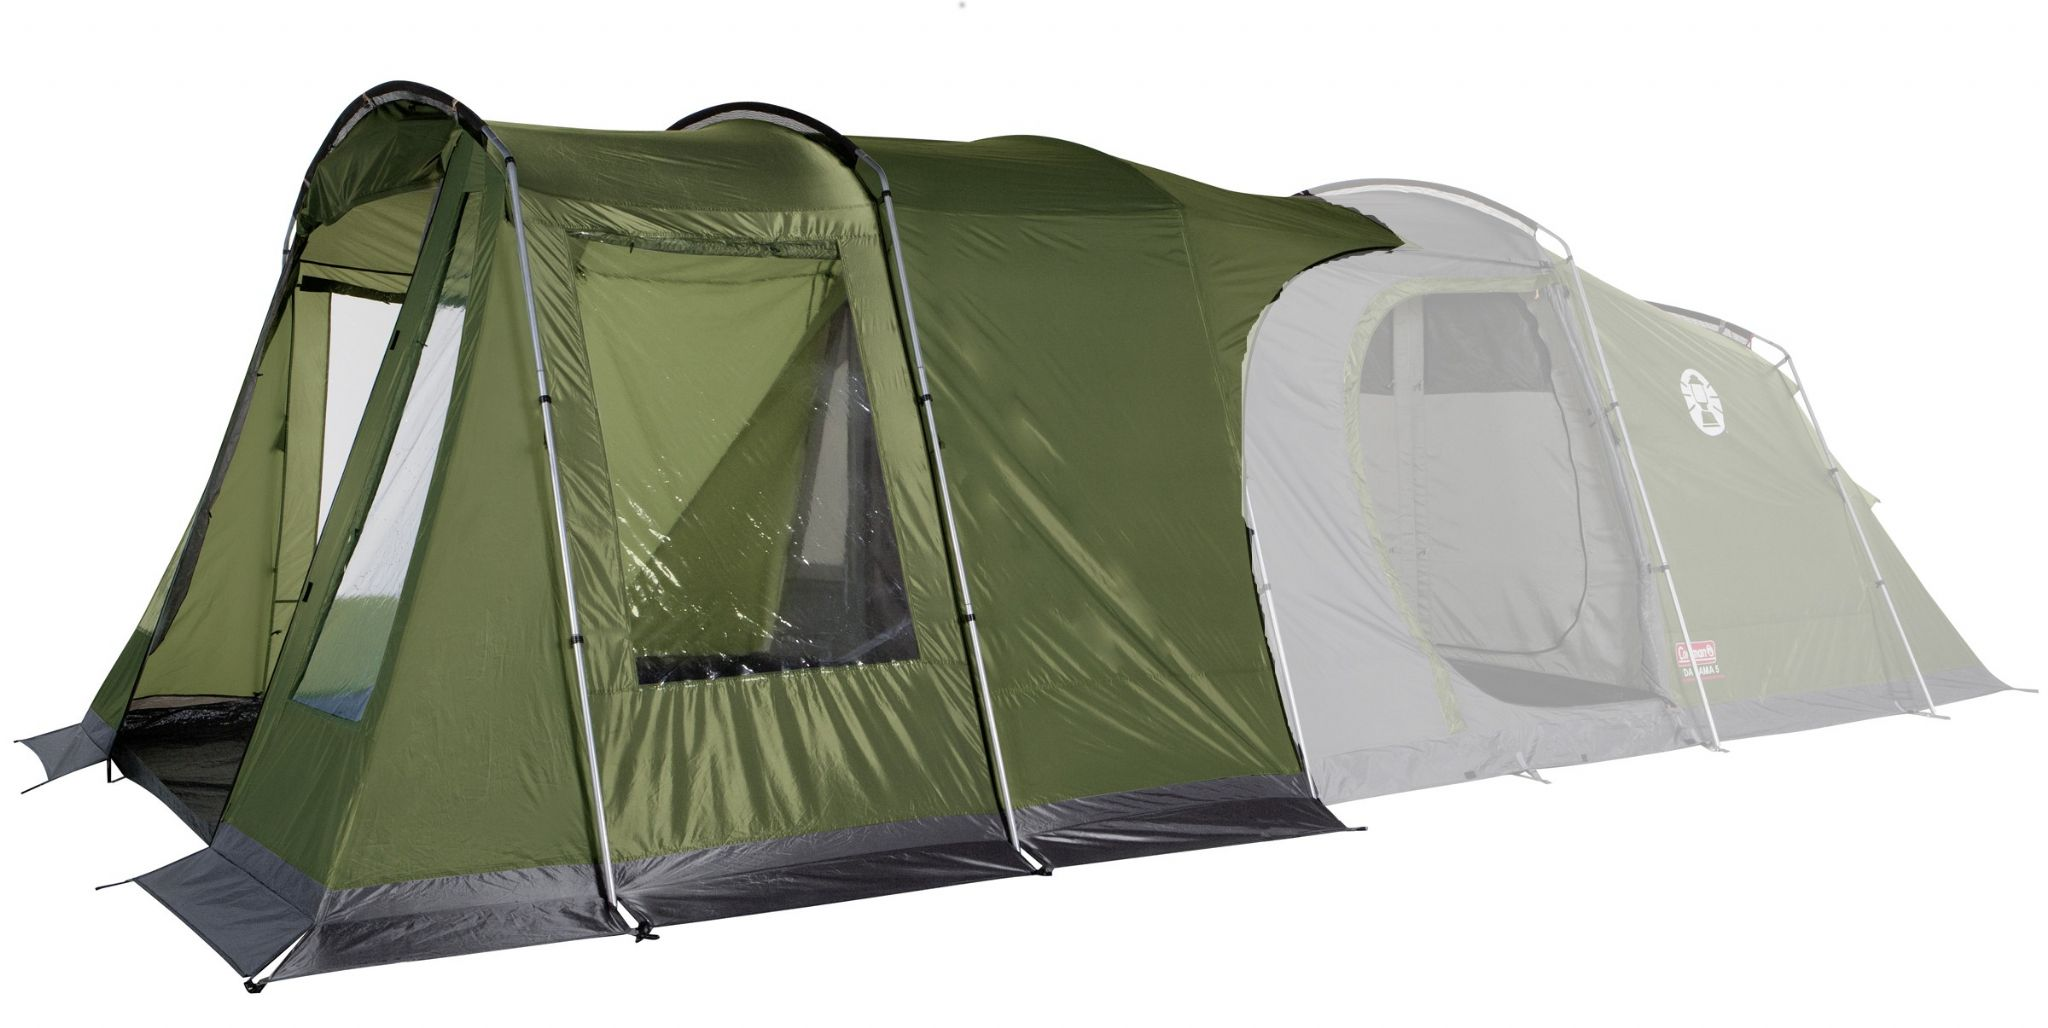 COLEMAN DA GAMA 6 MAN FAMILY TENT - Free TENT EXTENSION - Grasshopper Leisure  sc 1 st  Grasshopper Leisure & DA GAMA 6 MAN FAMILY TENT - Free TENT EXTENSION - Grasshopper Leisure